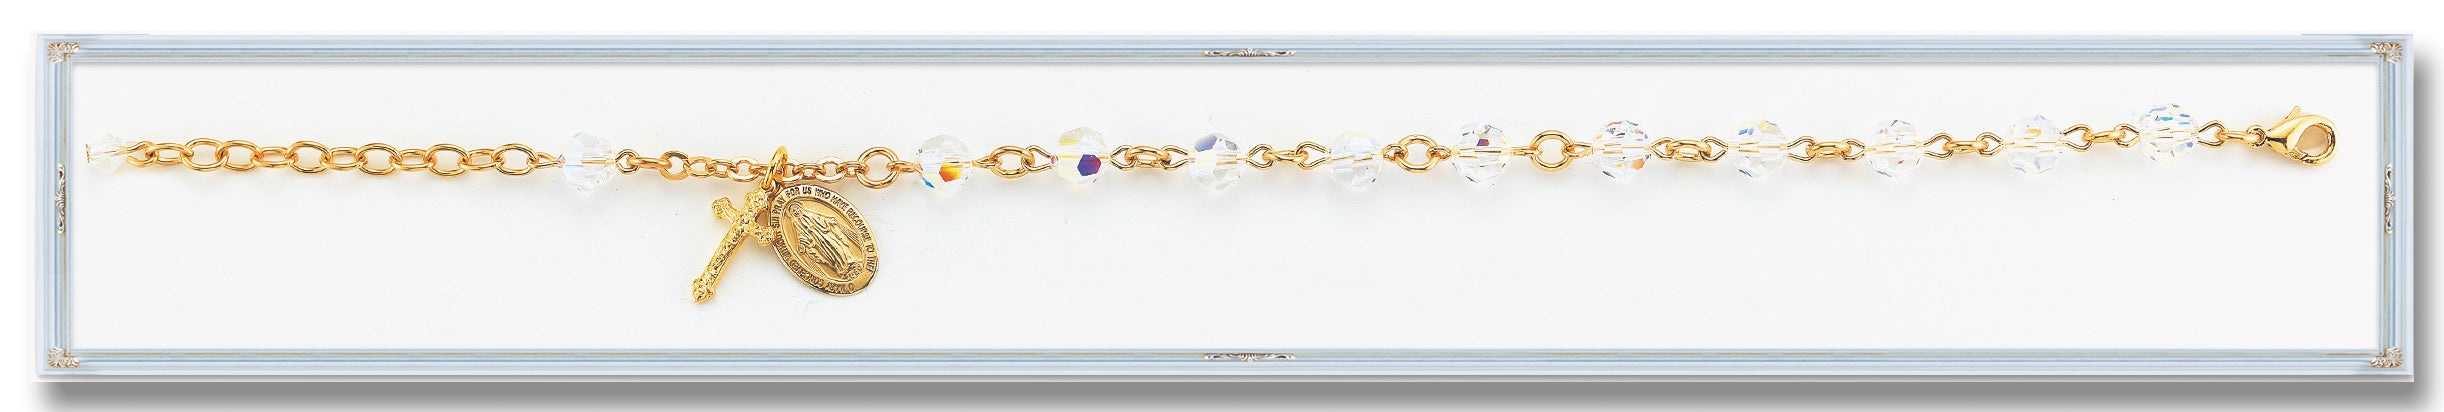 5mm Gold Plated Swarovski Crystal Bracelet